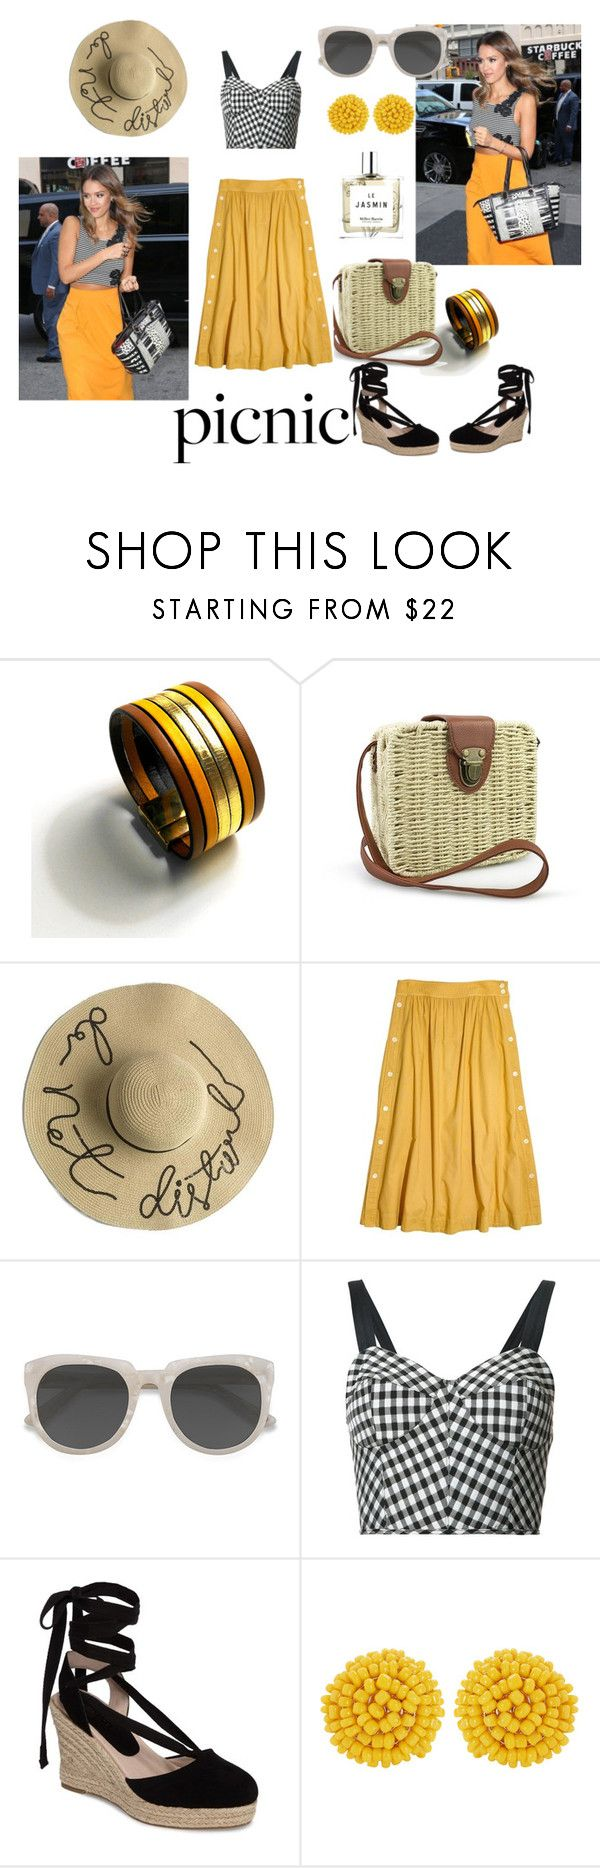 Le JASMINE by paisleyvelvetandlace on Polyvore featuring Tome, Madewell, Topshop, Humble Chic, Ace and Miller Harris